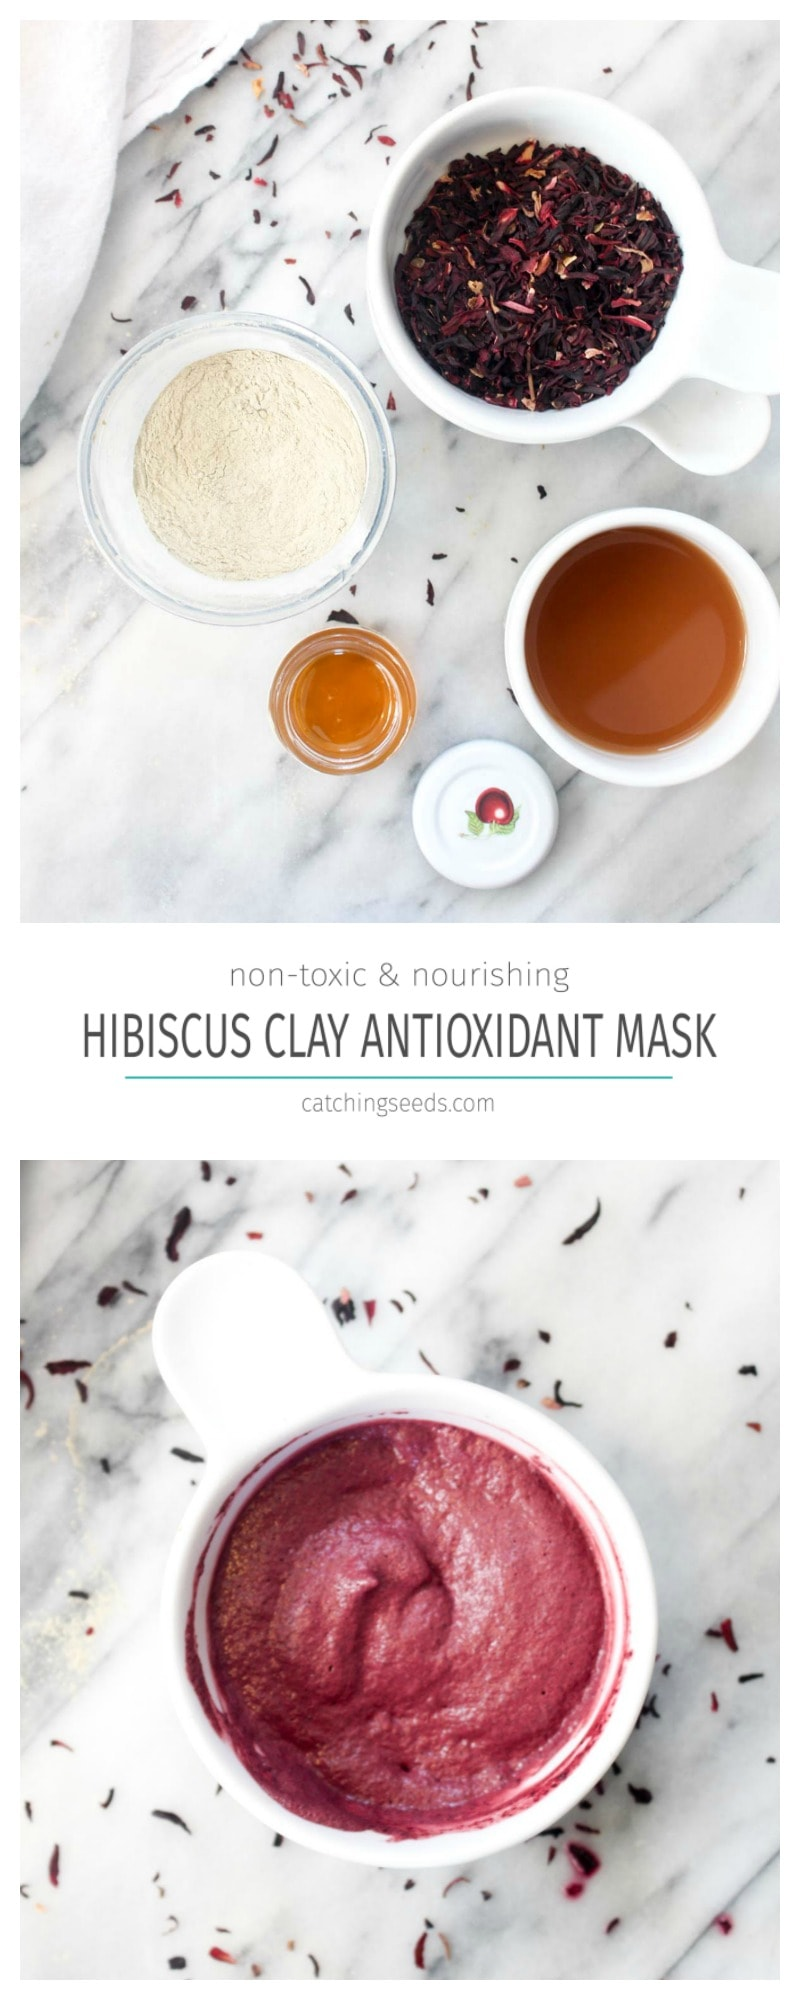 This Hibiscus Clay Antioxidant Face mask will infuse your face with anti-aging antioxidants and banish blackheads using all natural non-toxic ingredients! | CatchingSeeds.com